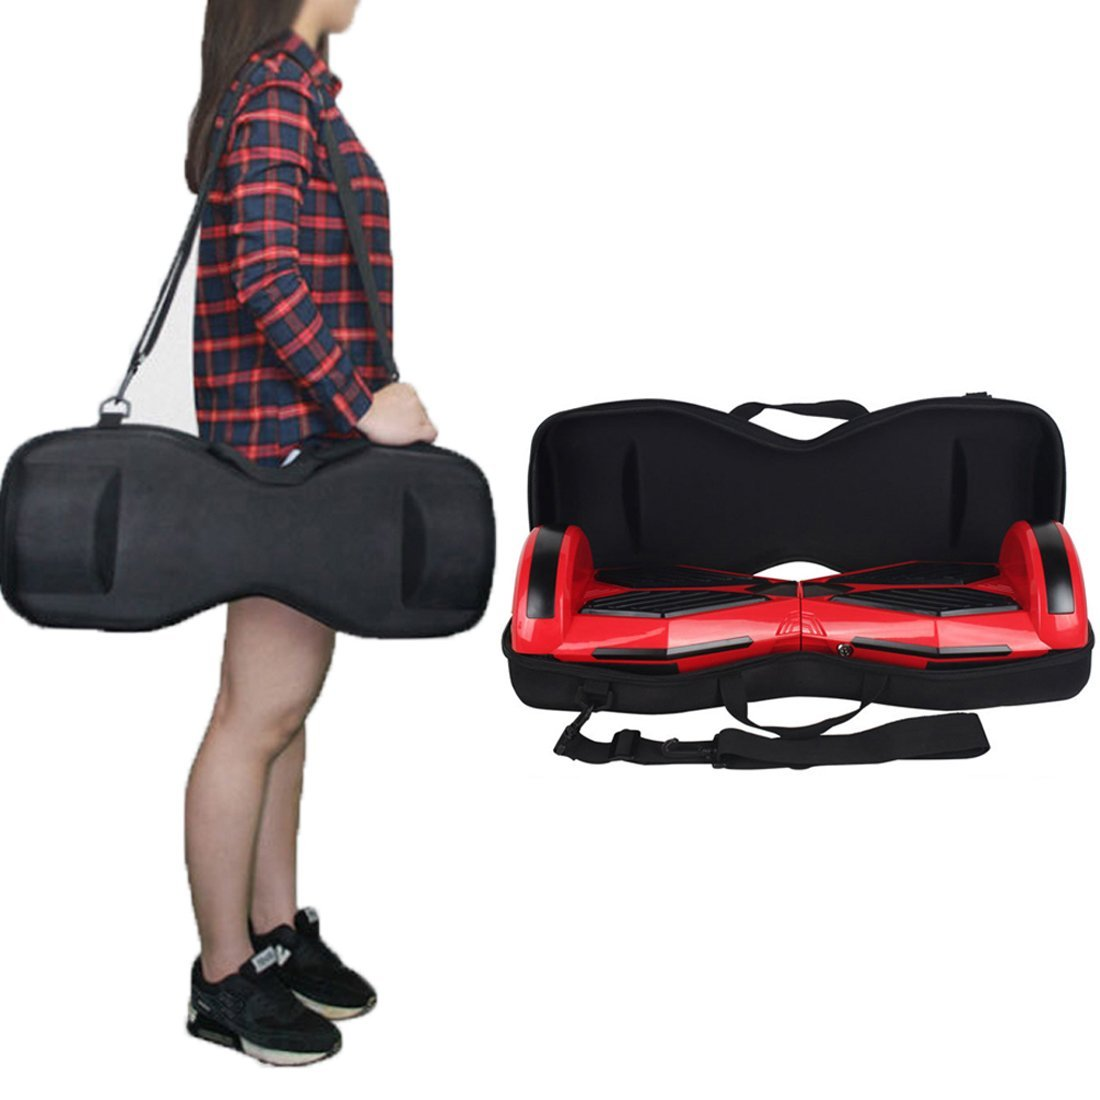 "6.5inch Scooter Carrying Bag JackSuper EVA Hard Case for 6.5"" Hoverboards Self Balancing Electric Scooter"